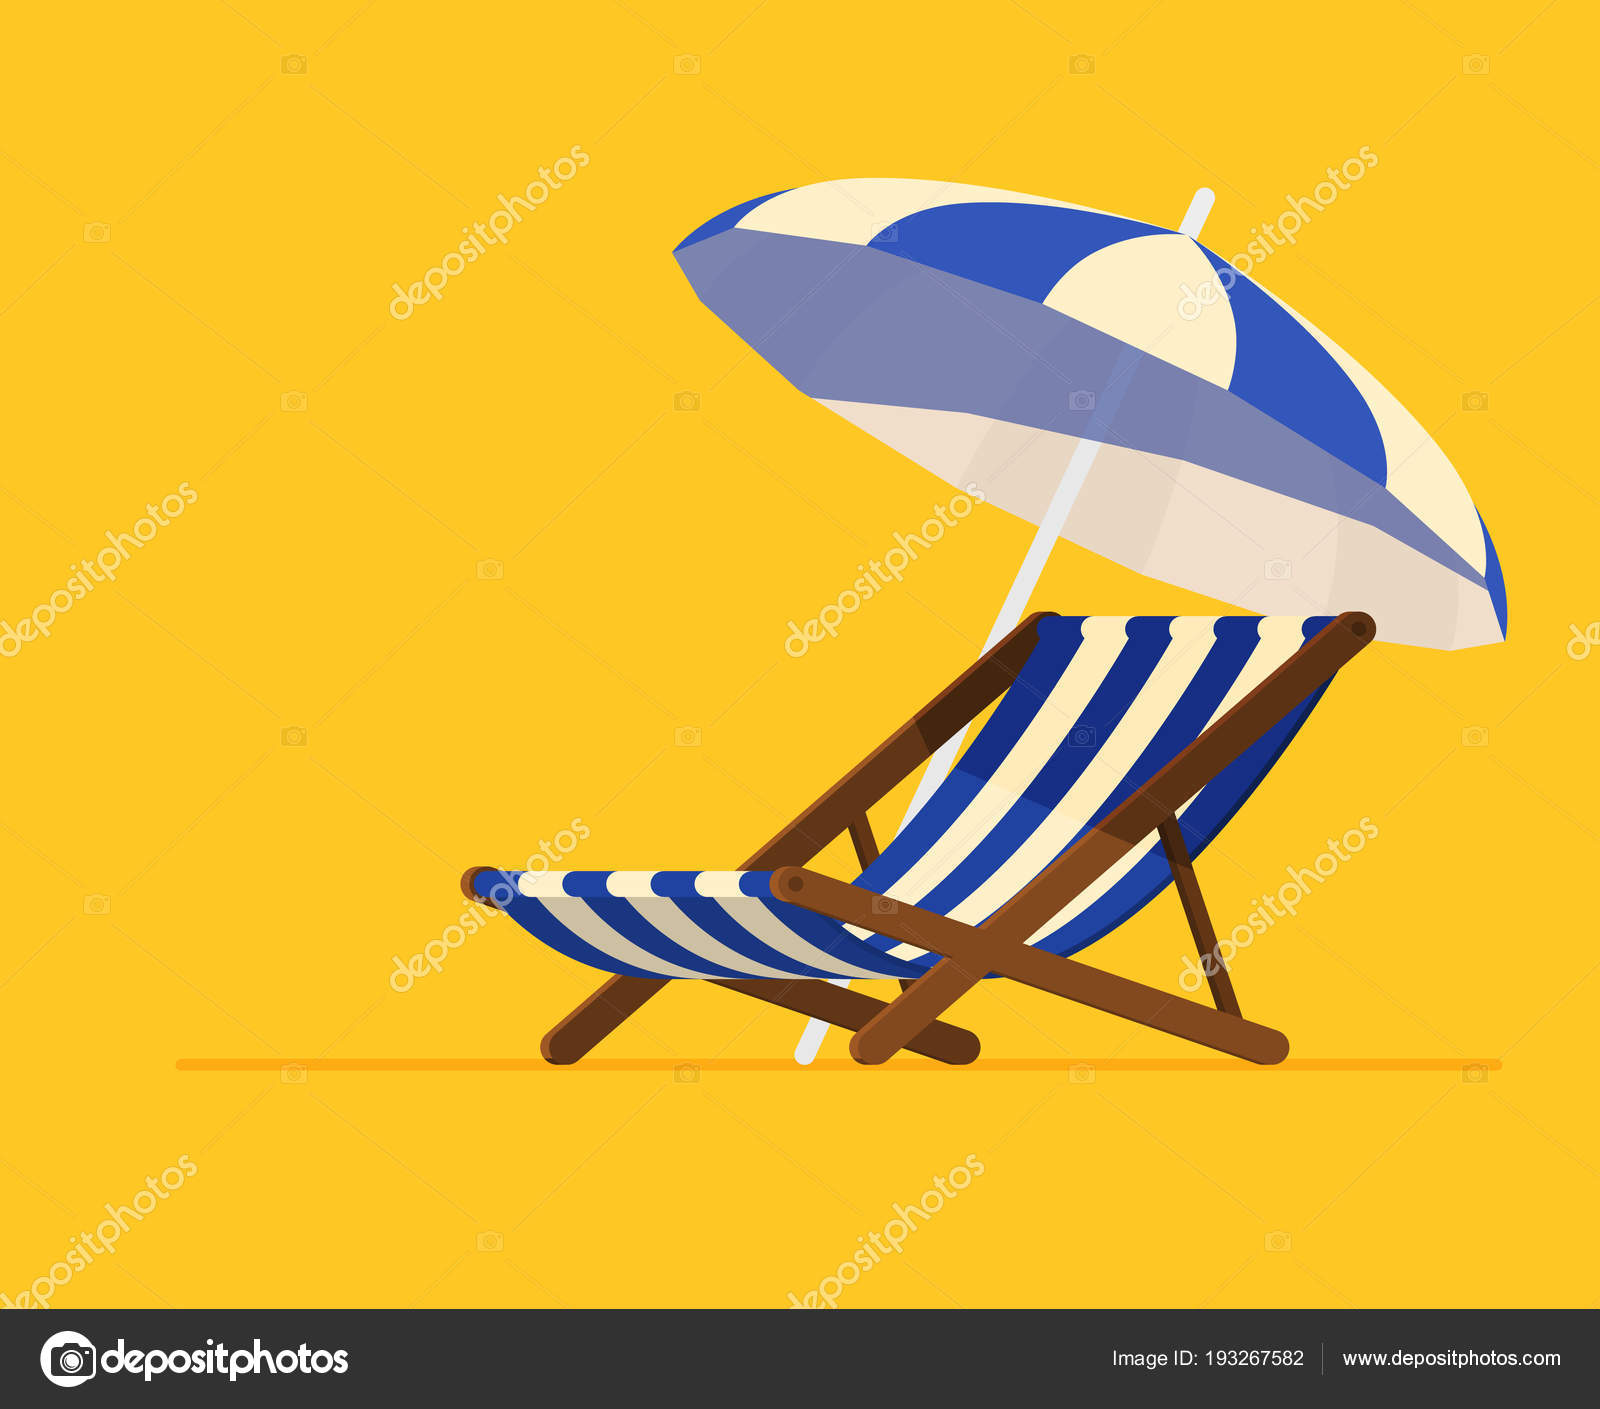 air travel beach chairs ergonomic chair accessories vacation and concept umbrella stock vector by igordeyka